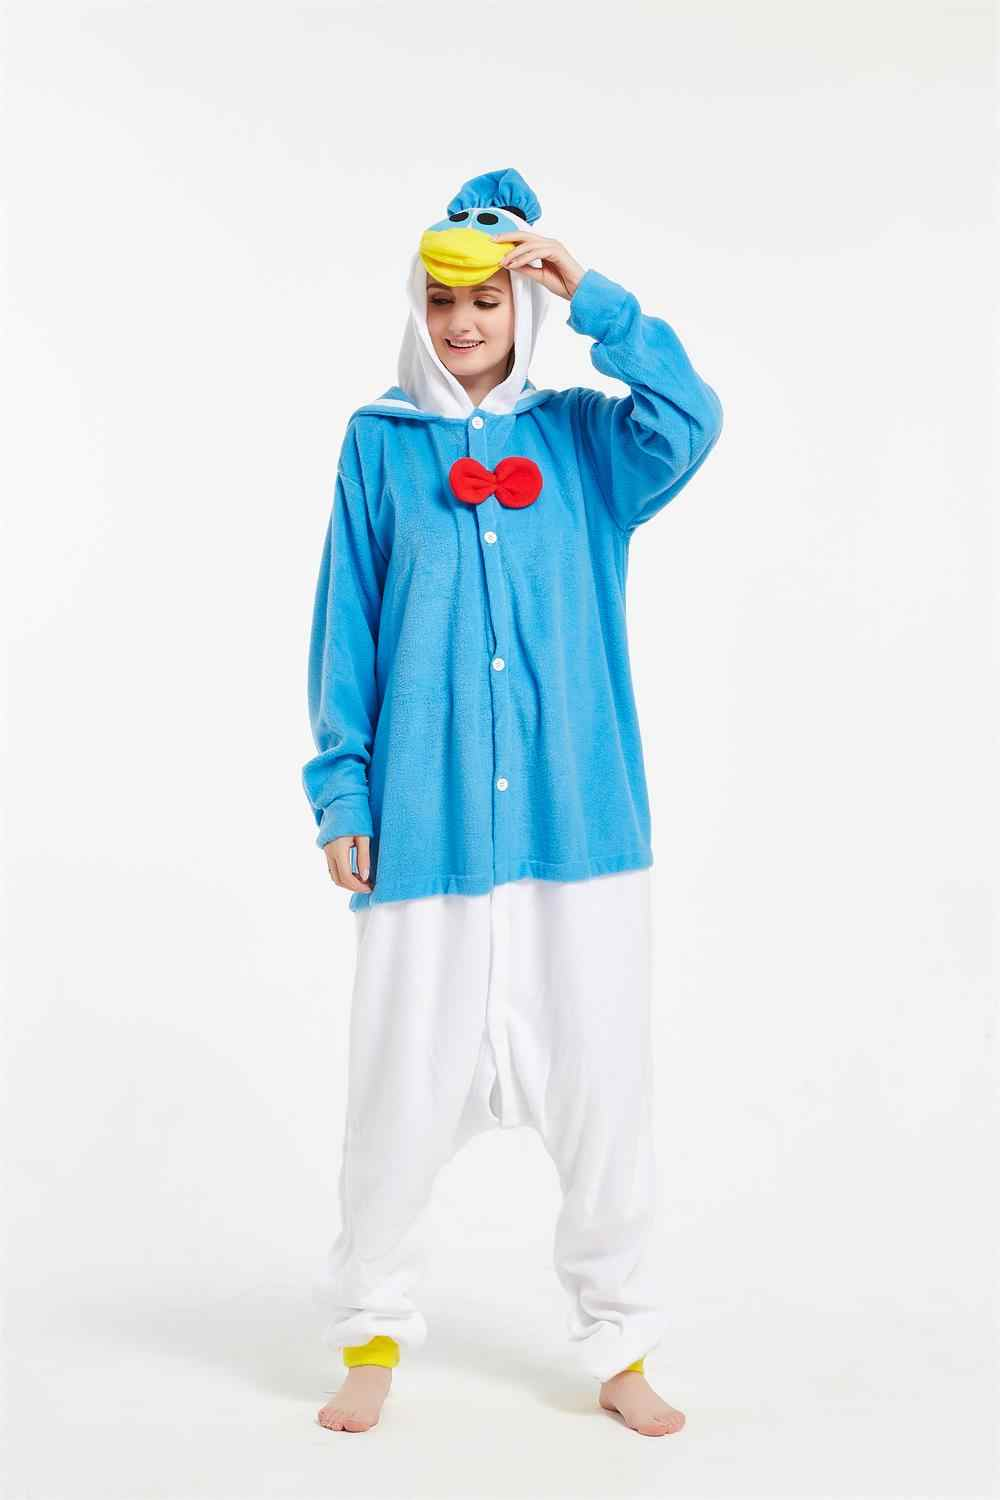 Detail Feedback Questions about Kigurumi Adult Anime Cosplay Costumes  Cartoon Donald Duck Onesie Unisex Pajamas Sleepwear Party Pyjamas For Women  Man on ... 22a0e5d81